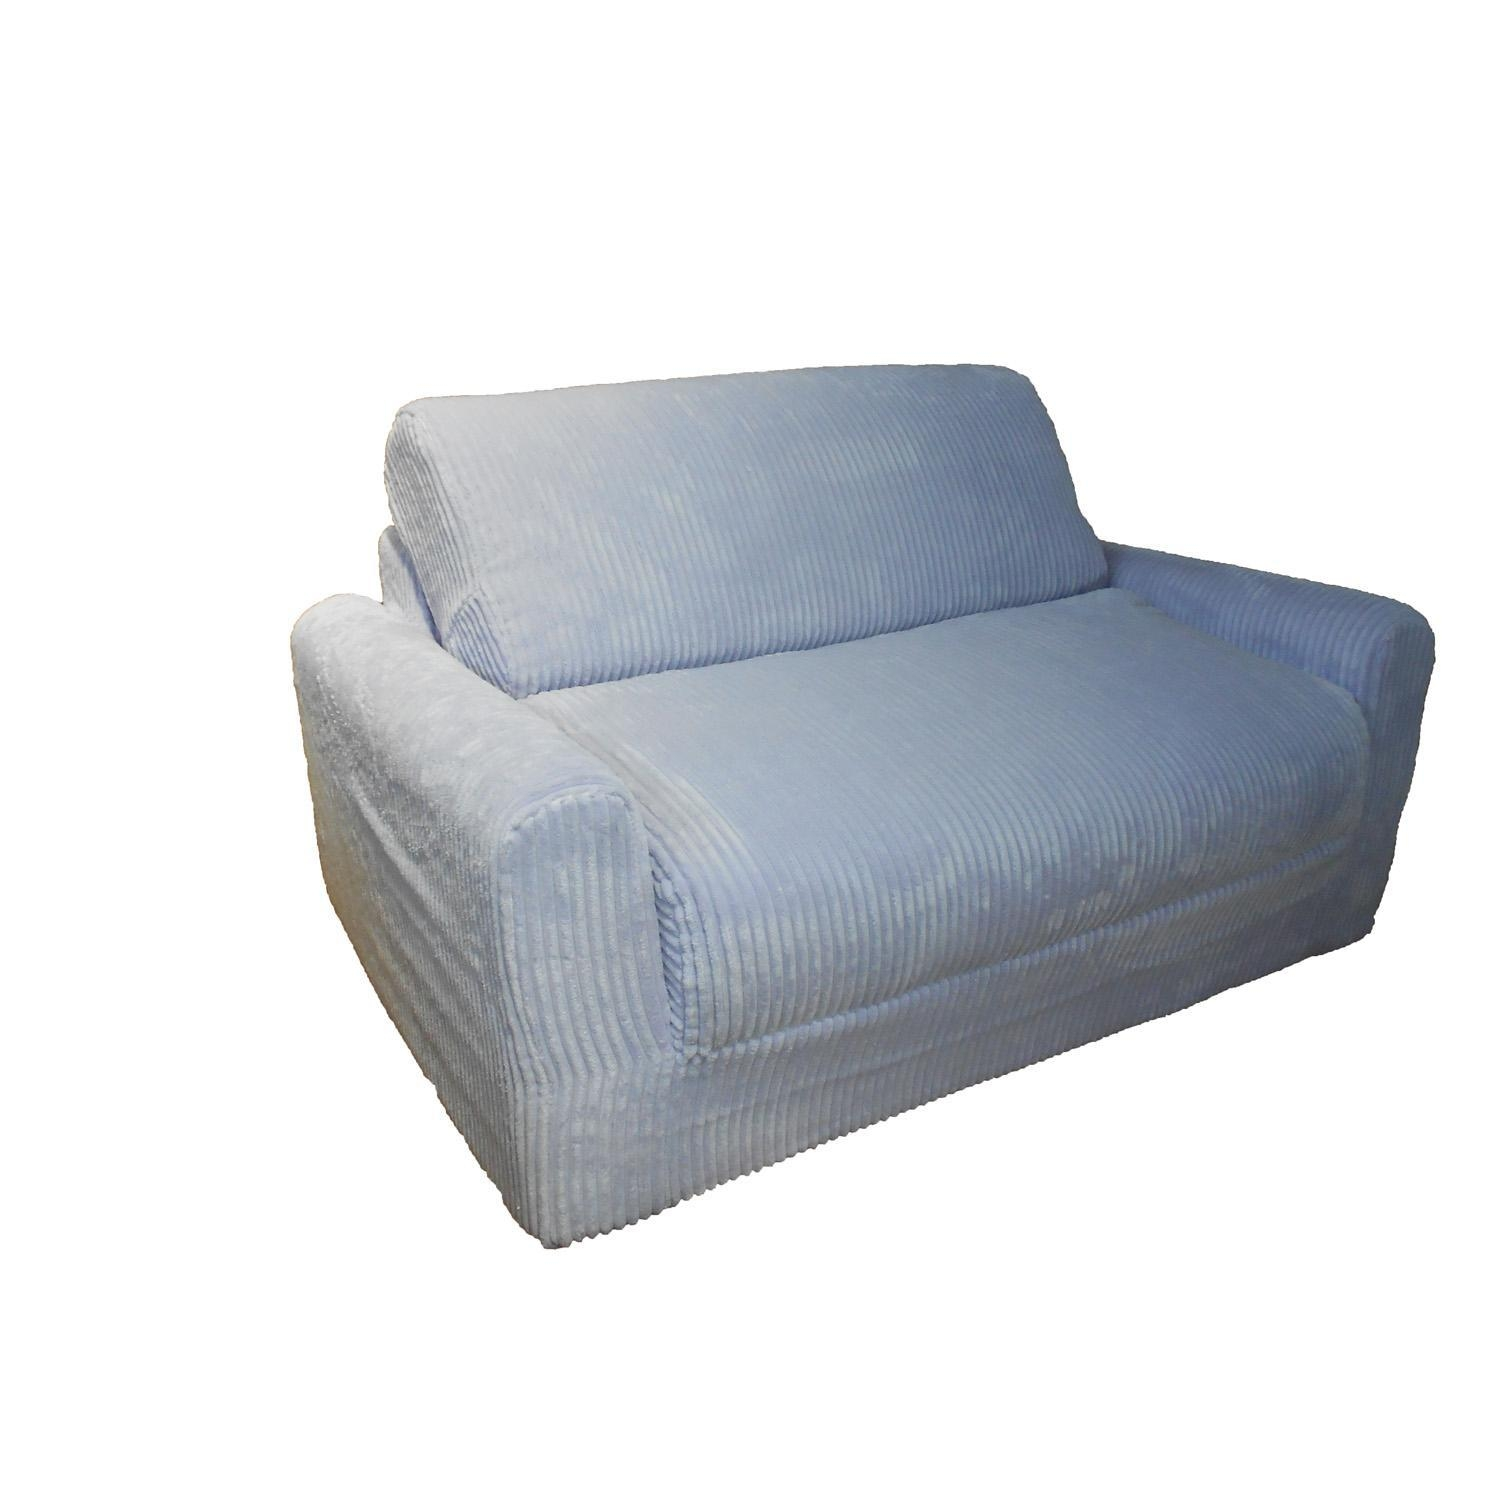 Marshmallow Furniture, Children's 2 In 1 Flip Open Foam Sofa Intended For Childrens Sofa Chairs (Image 9 of 20)